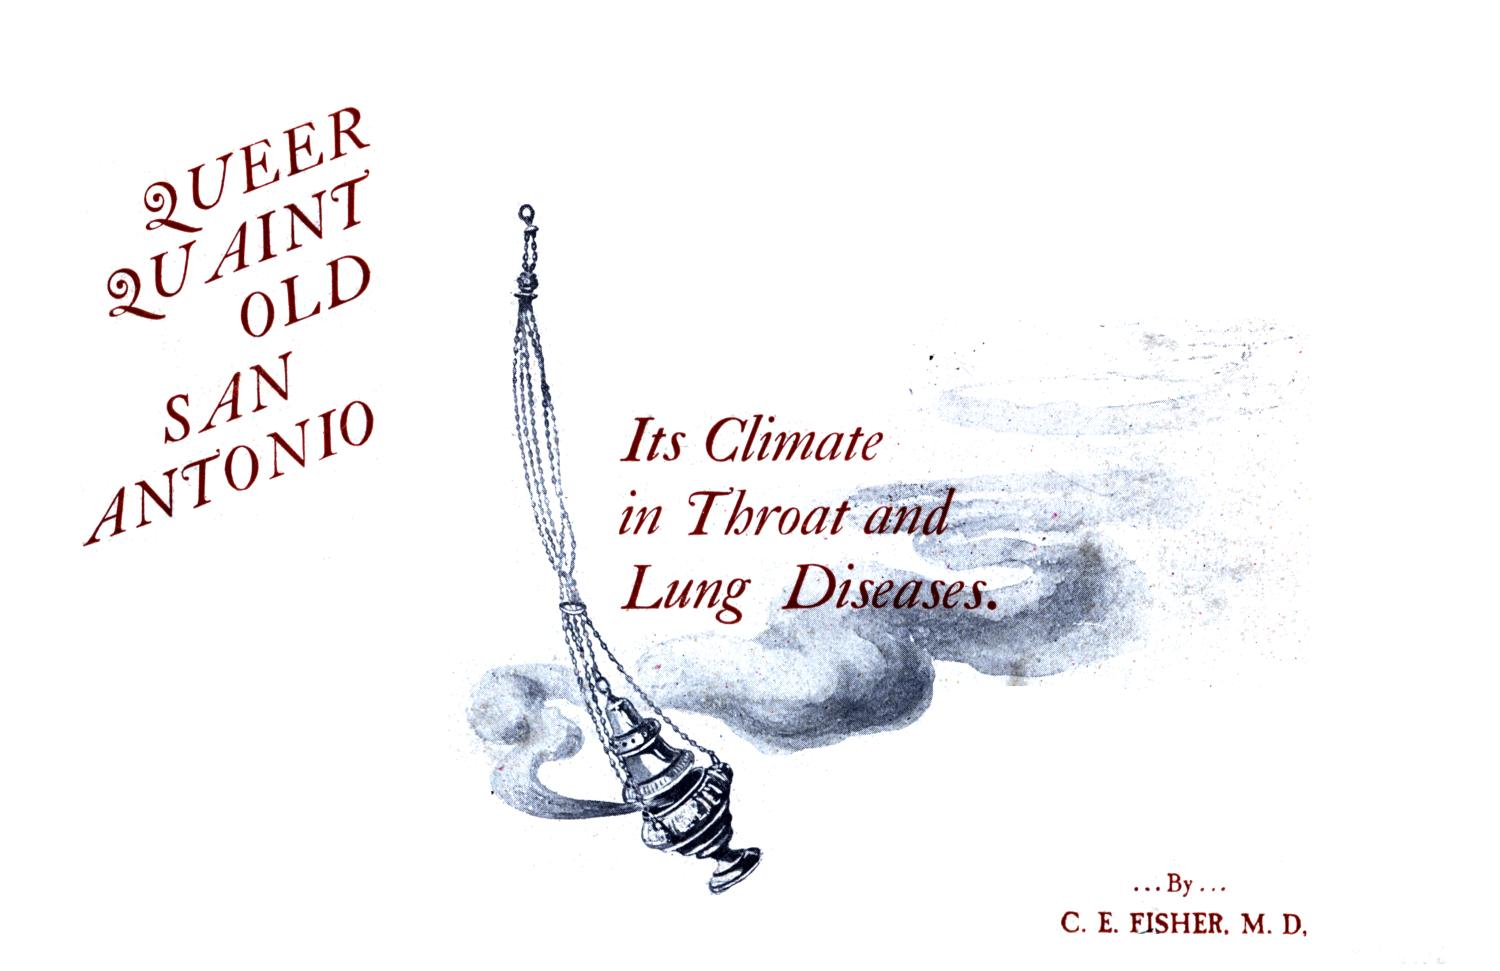 Queer, Quaint Old San Antonio: Its Climate in Throat and Lung Diseases                                                                                                      Title Page